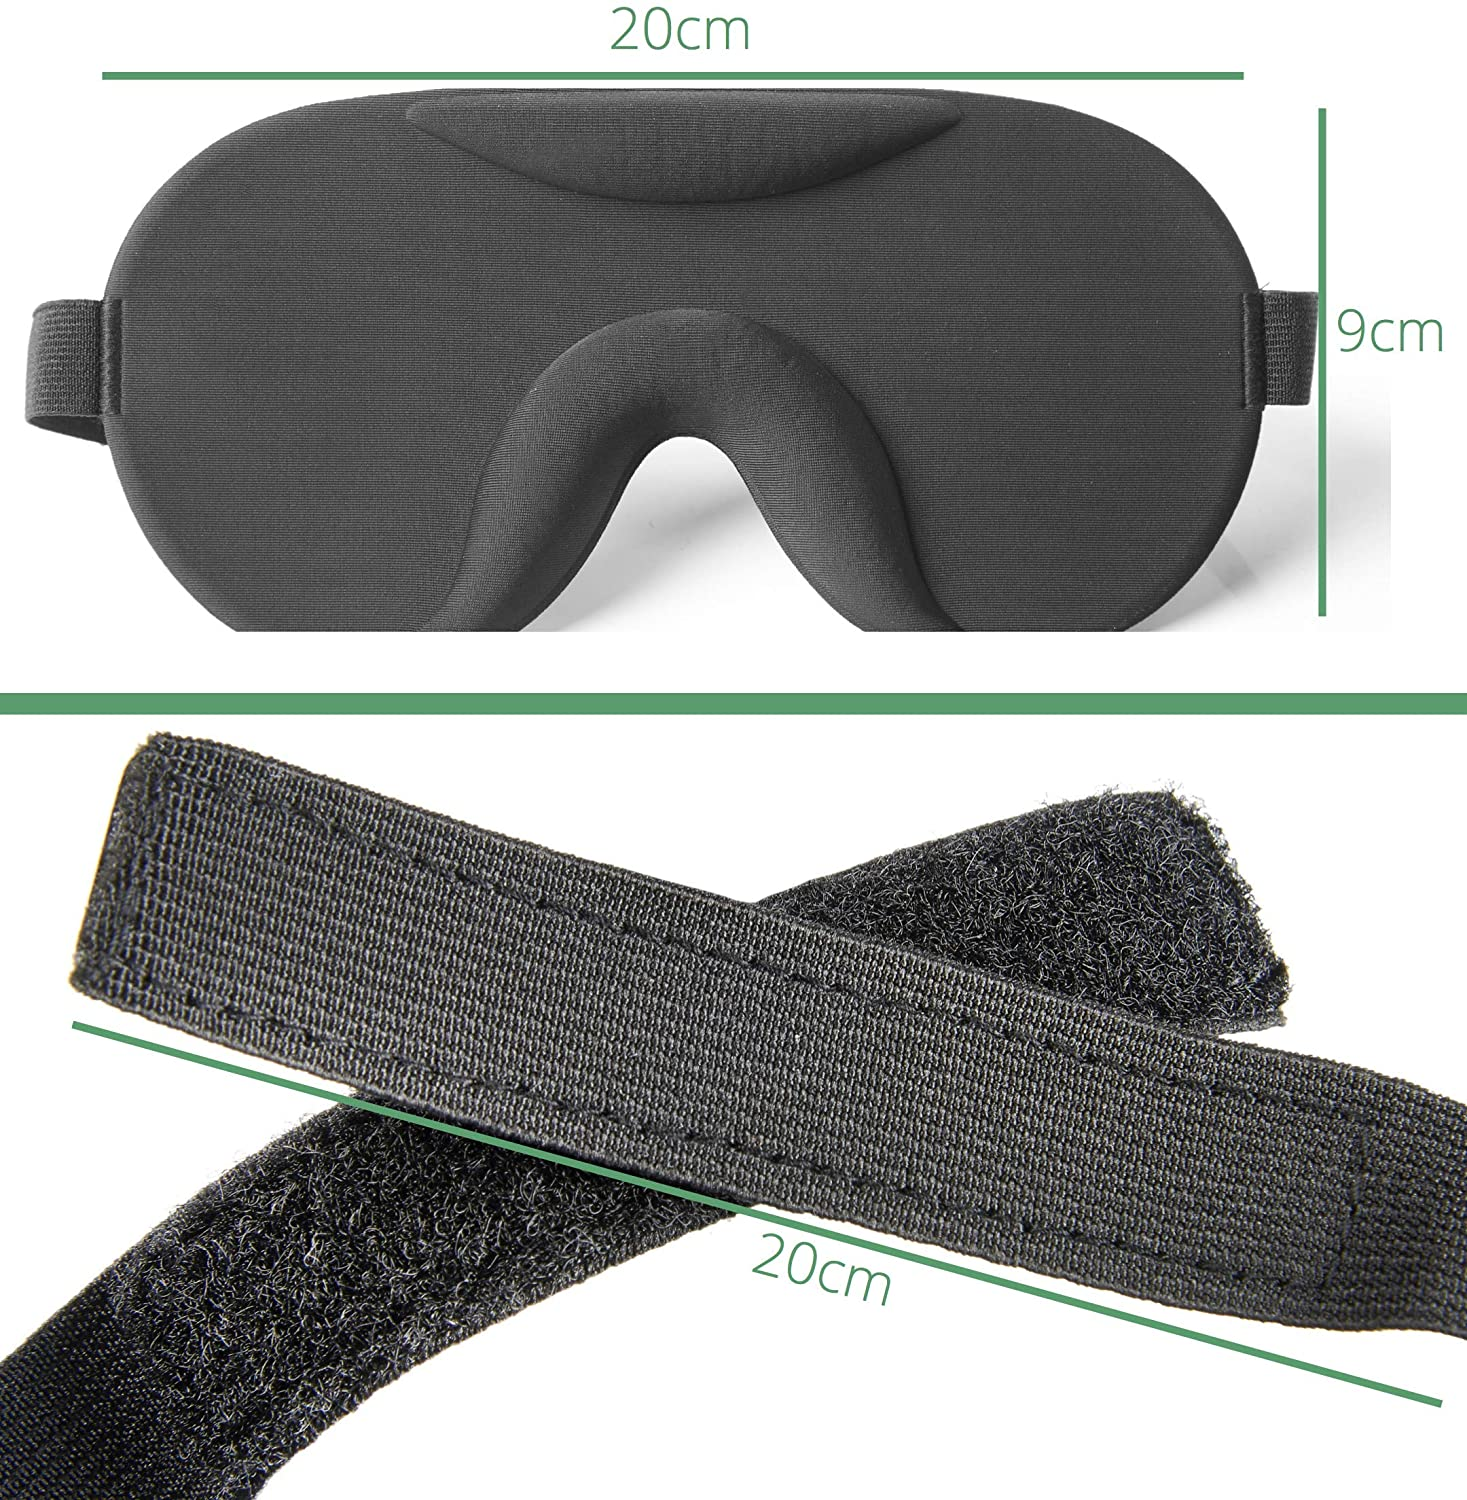 Sleep Eye Mask for Men & Women Purple, Soul Projekt Ultra Blackout Par 3D Contoured Sleeping Mask, Concave Moulded Comforting Night Sleep Mask, 100% Blackout Blindfold for Complete Darkness